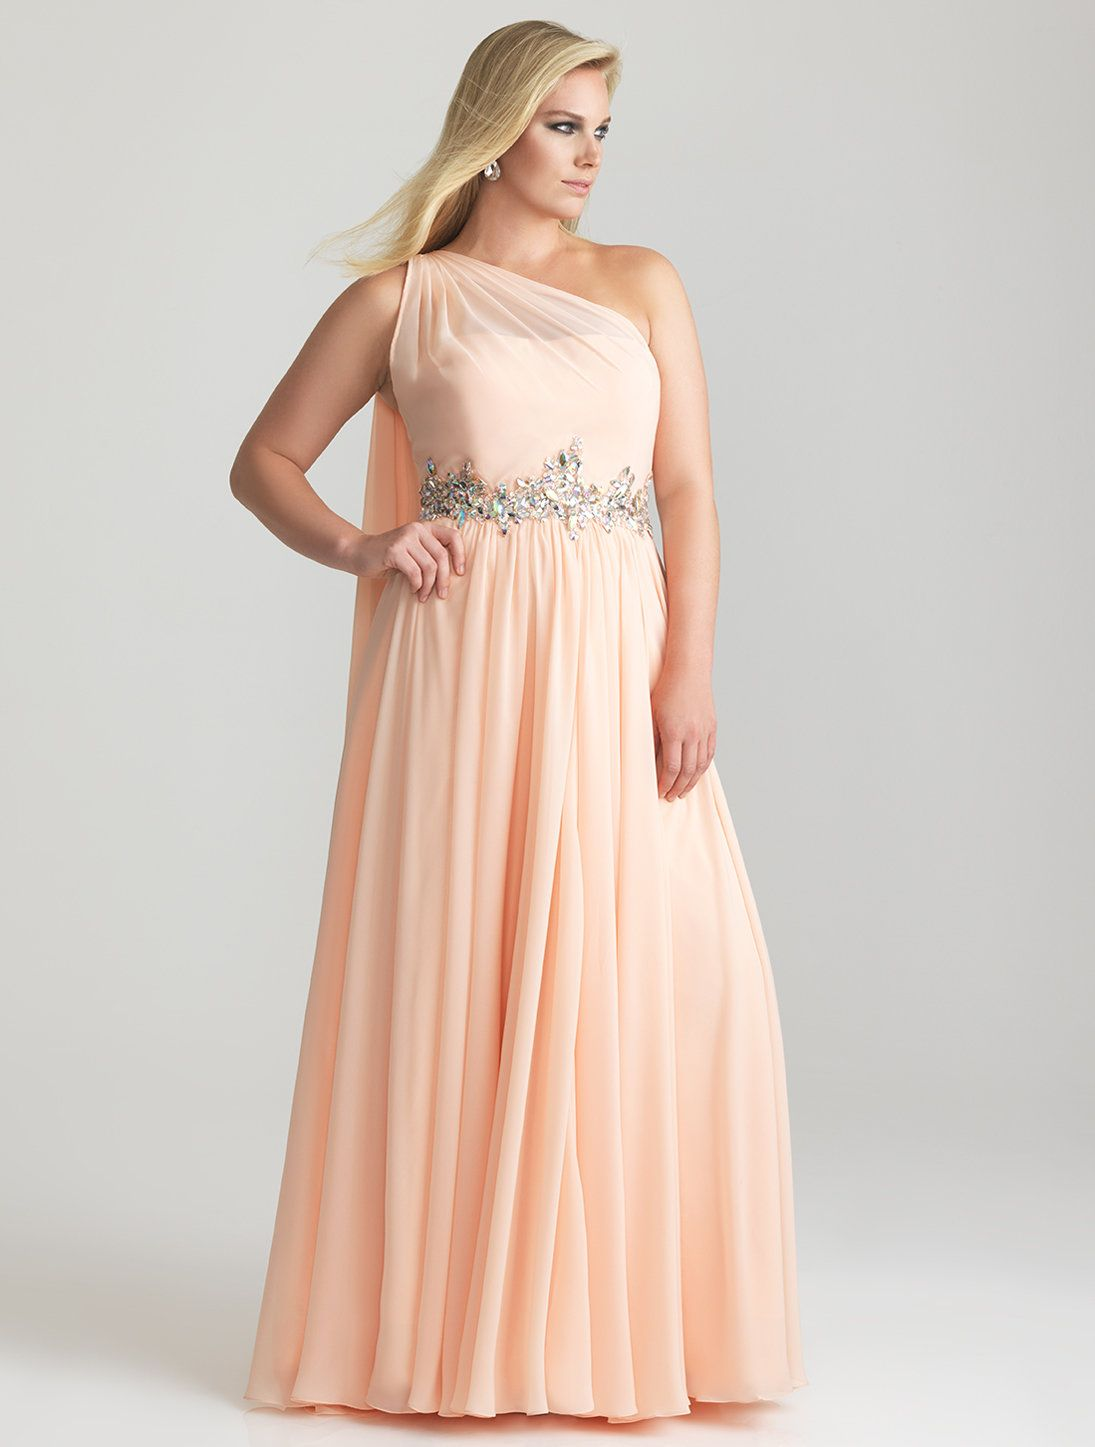 Plus size vintage prom dresses plus size prom dress unique plus size vintage prom dresses plus size prom dress unique vintage ombrellifo Gallery